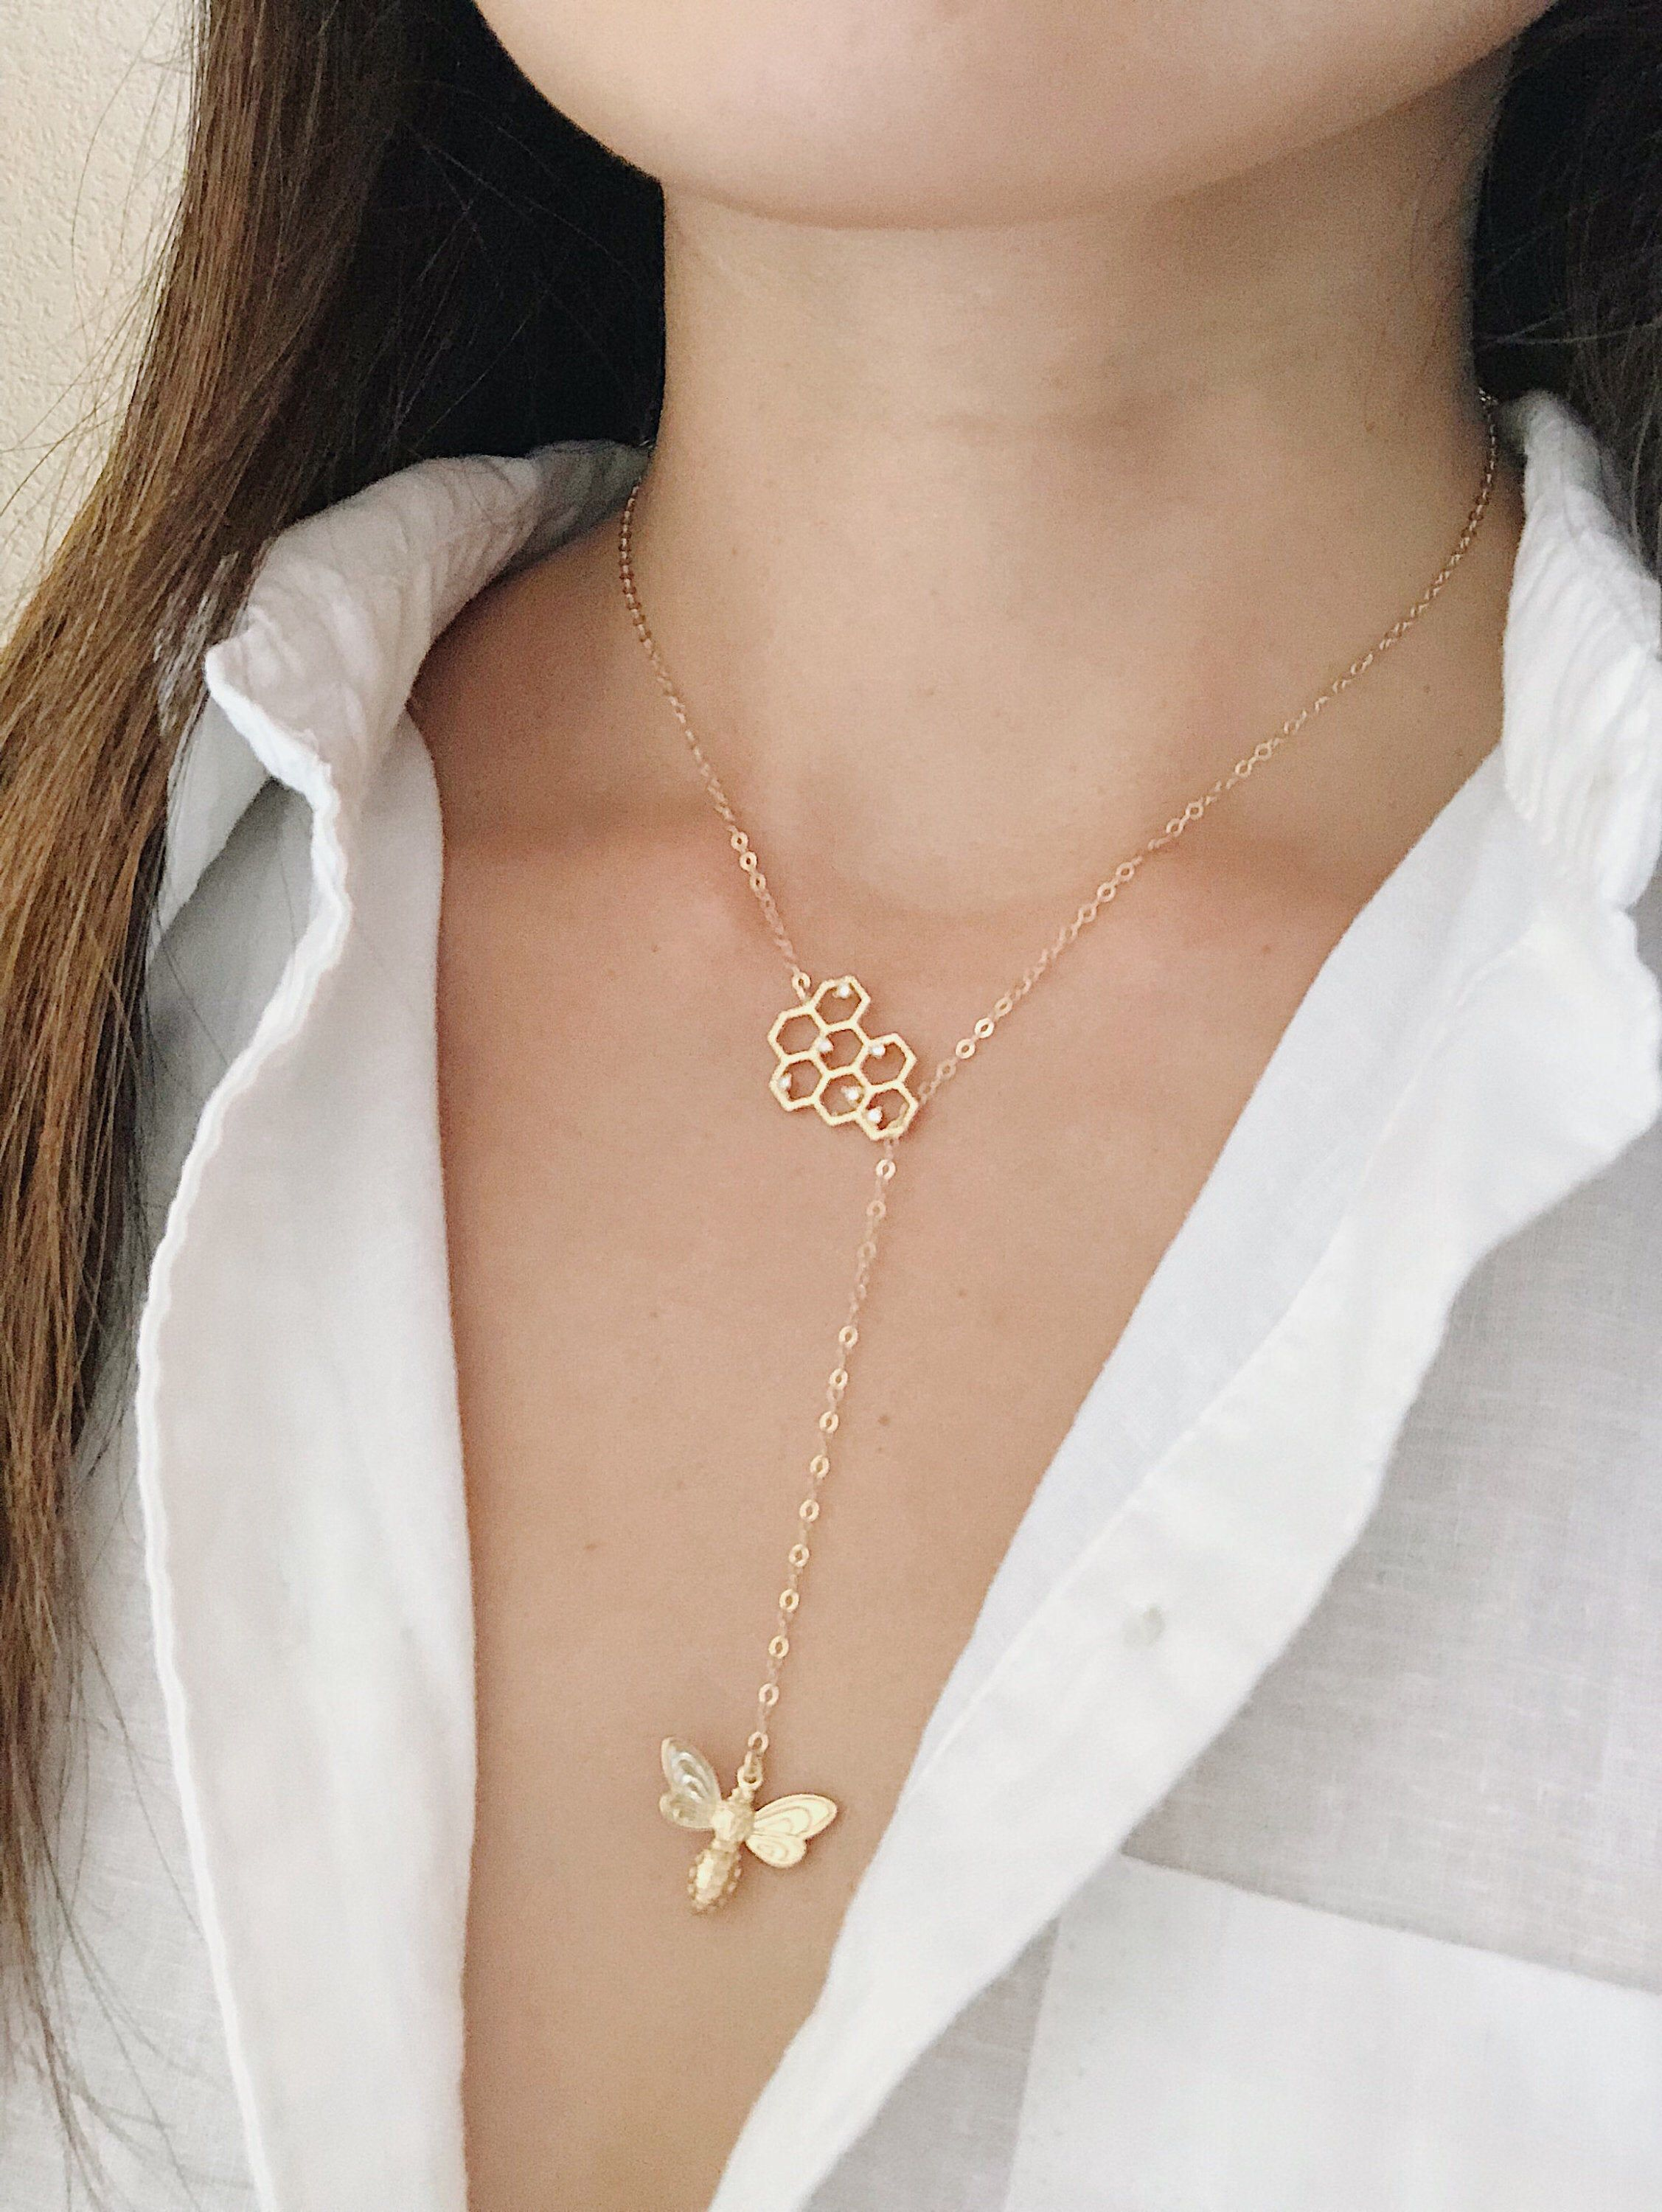 Photo of Honeycomb Bee Lariat Necklace – Gold Honeycomb Necklace, Bee Lariat, Gold Bee Necklace, Dainty Jewelry, Honeybee Necklace, Dainty